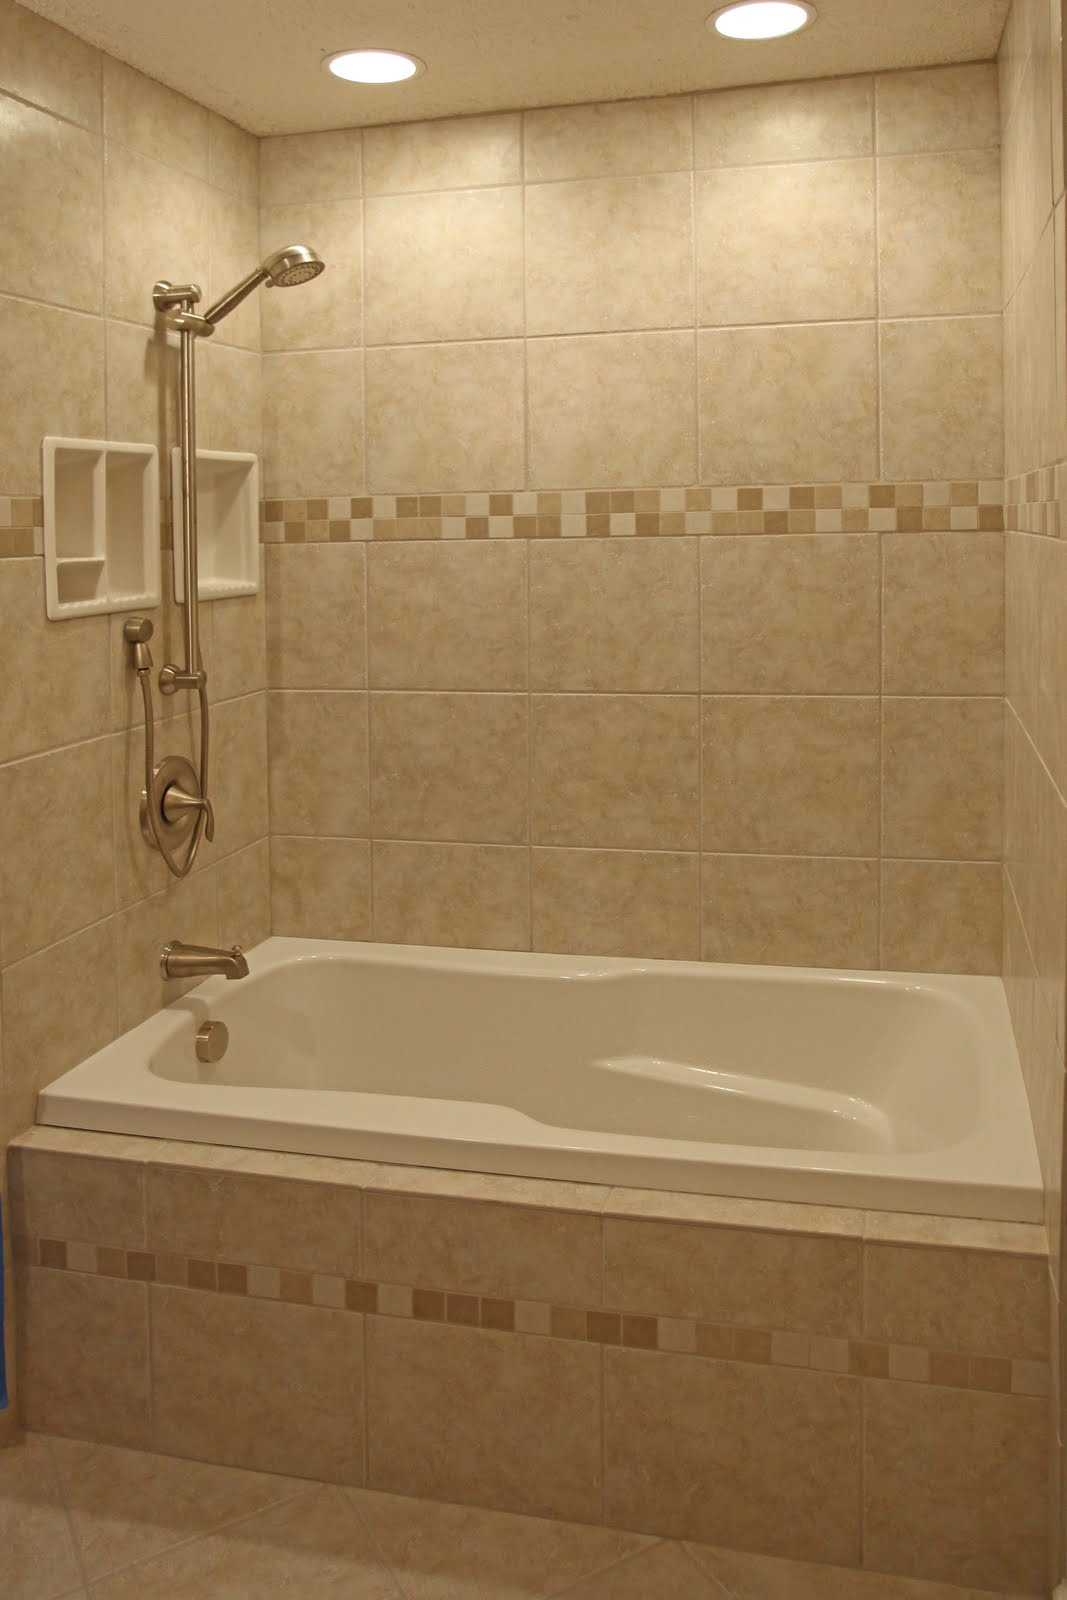 Bathroom remodeling design ideas tile shower niches for Bath tiles design ideas